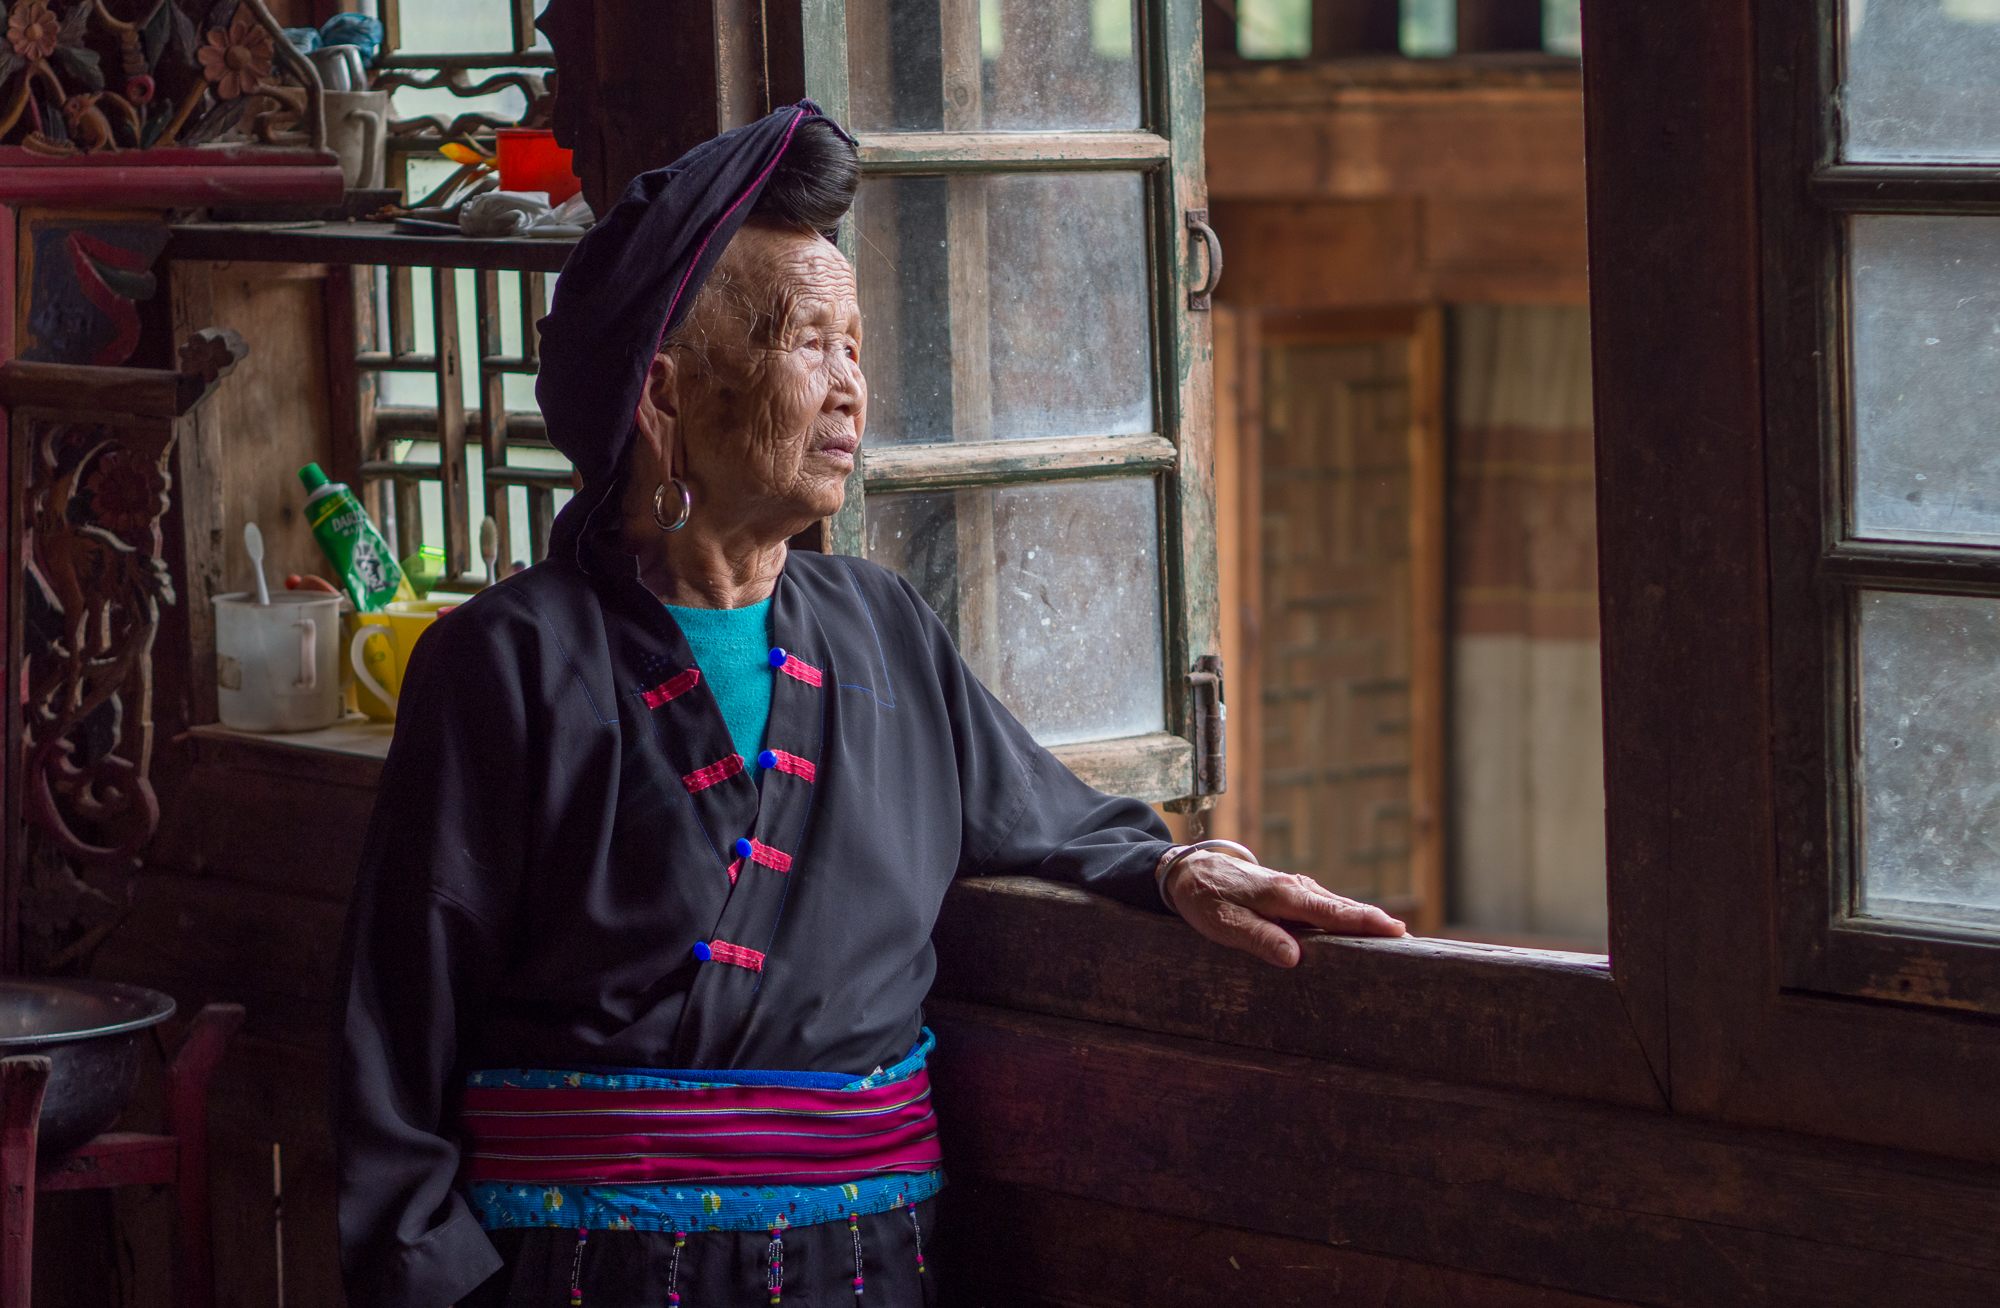 Local people at the village, China